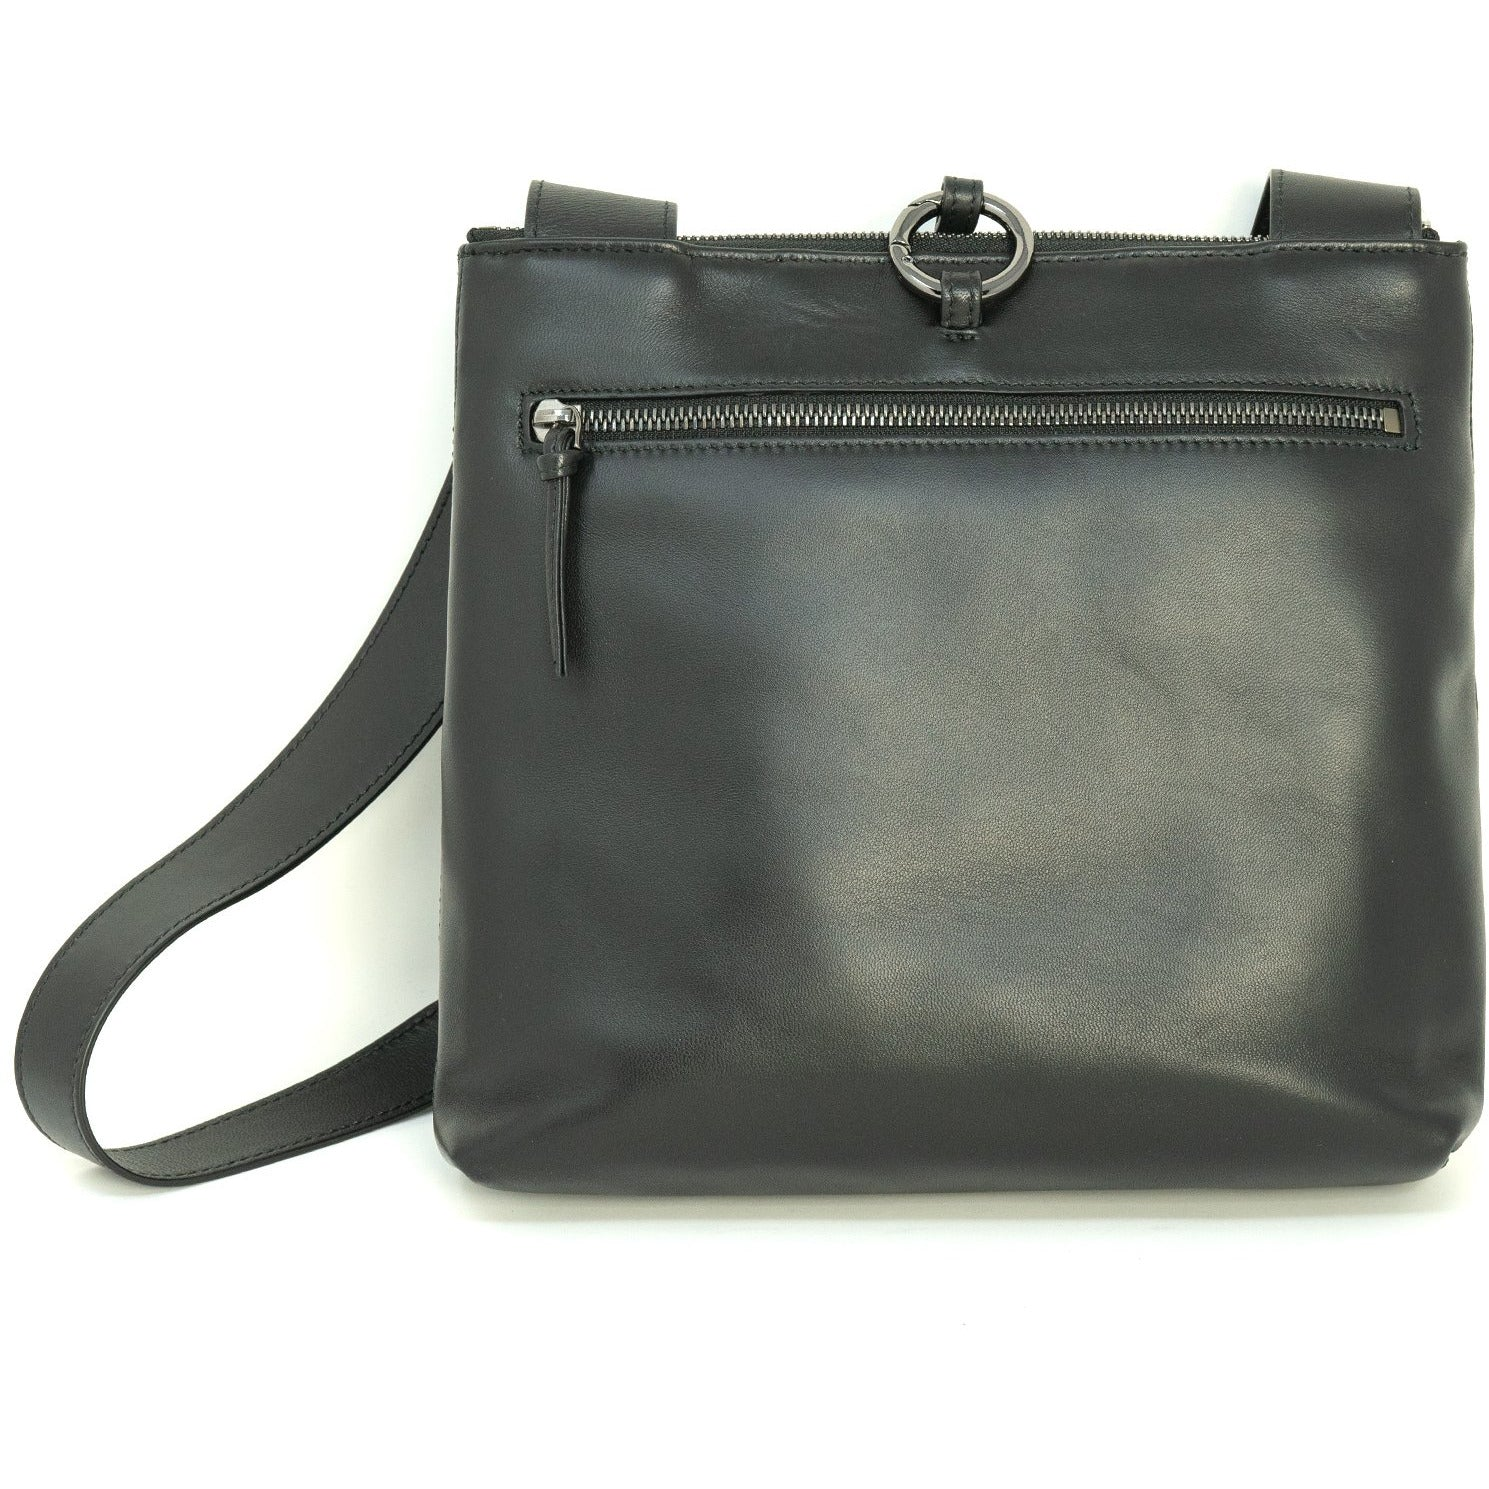 GINGER IS Crossbody Bag Intrecciato Optical Patent Black Leather - Jennifer Tattanelli